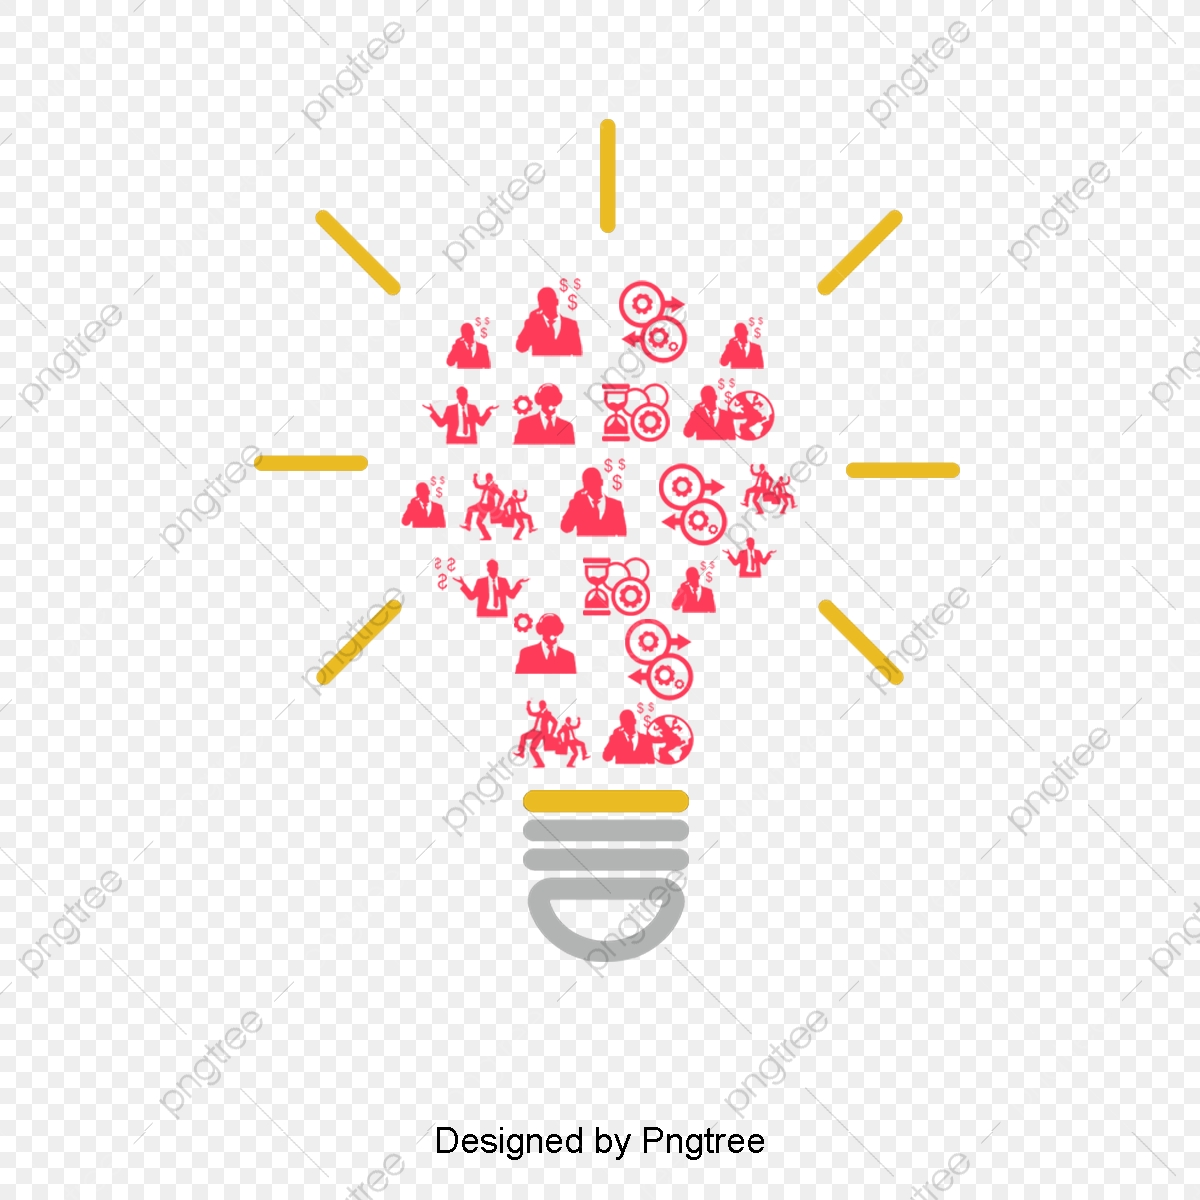 Free Business Partnership Cliparts, Download Free Clip Art, Free Clip Art  on Clipart Library